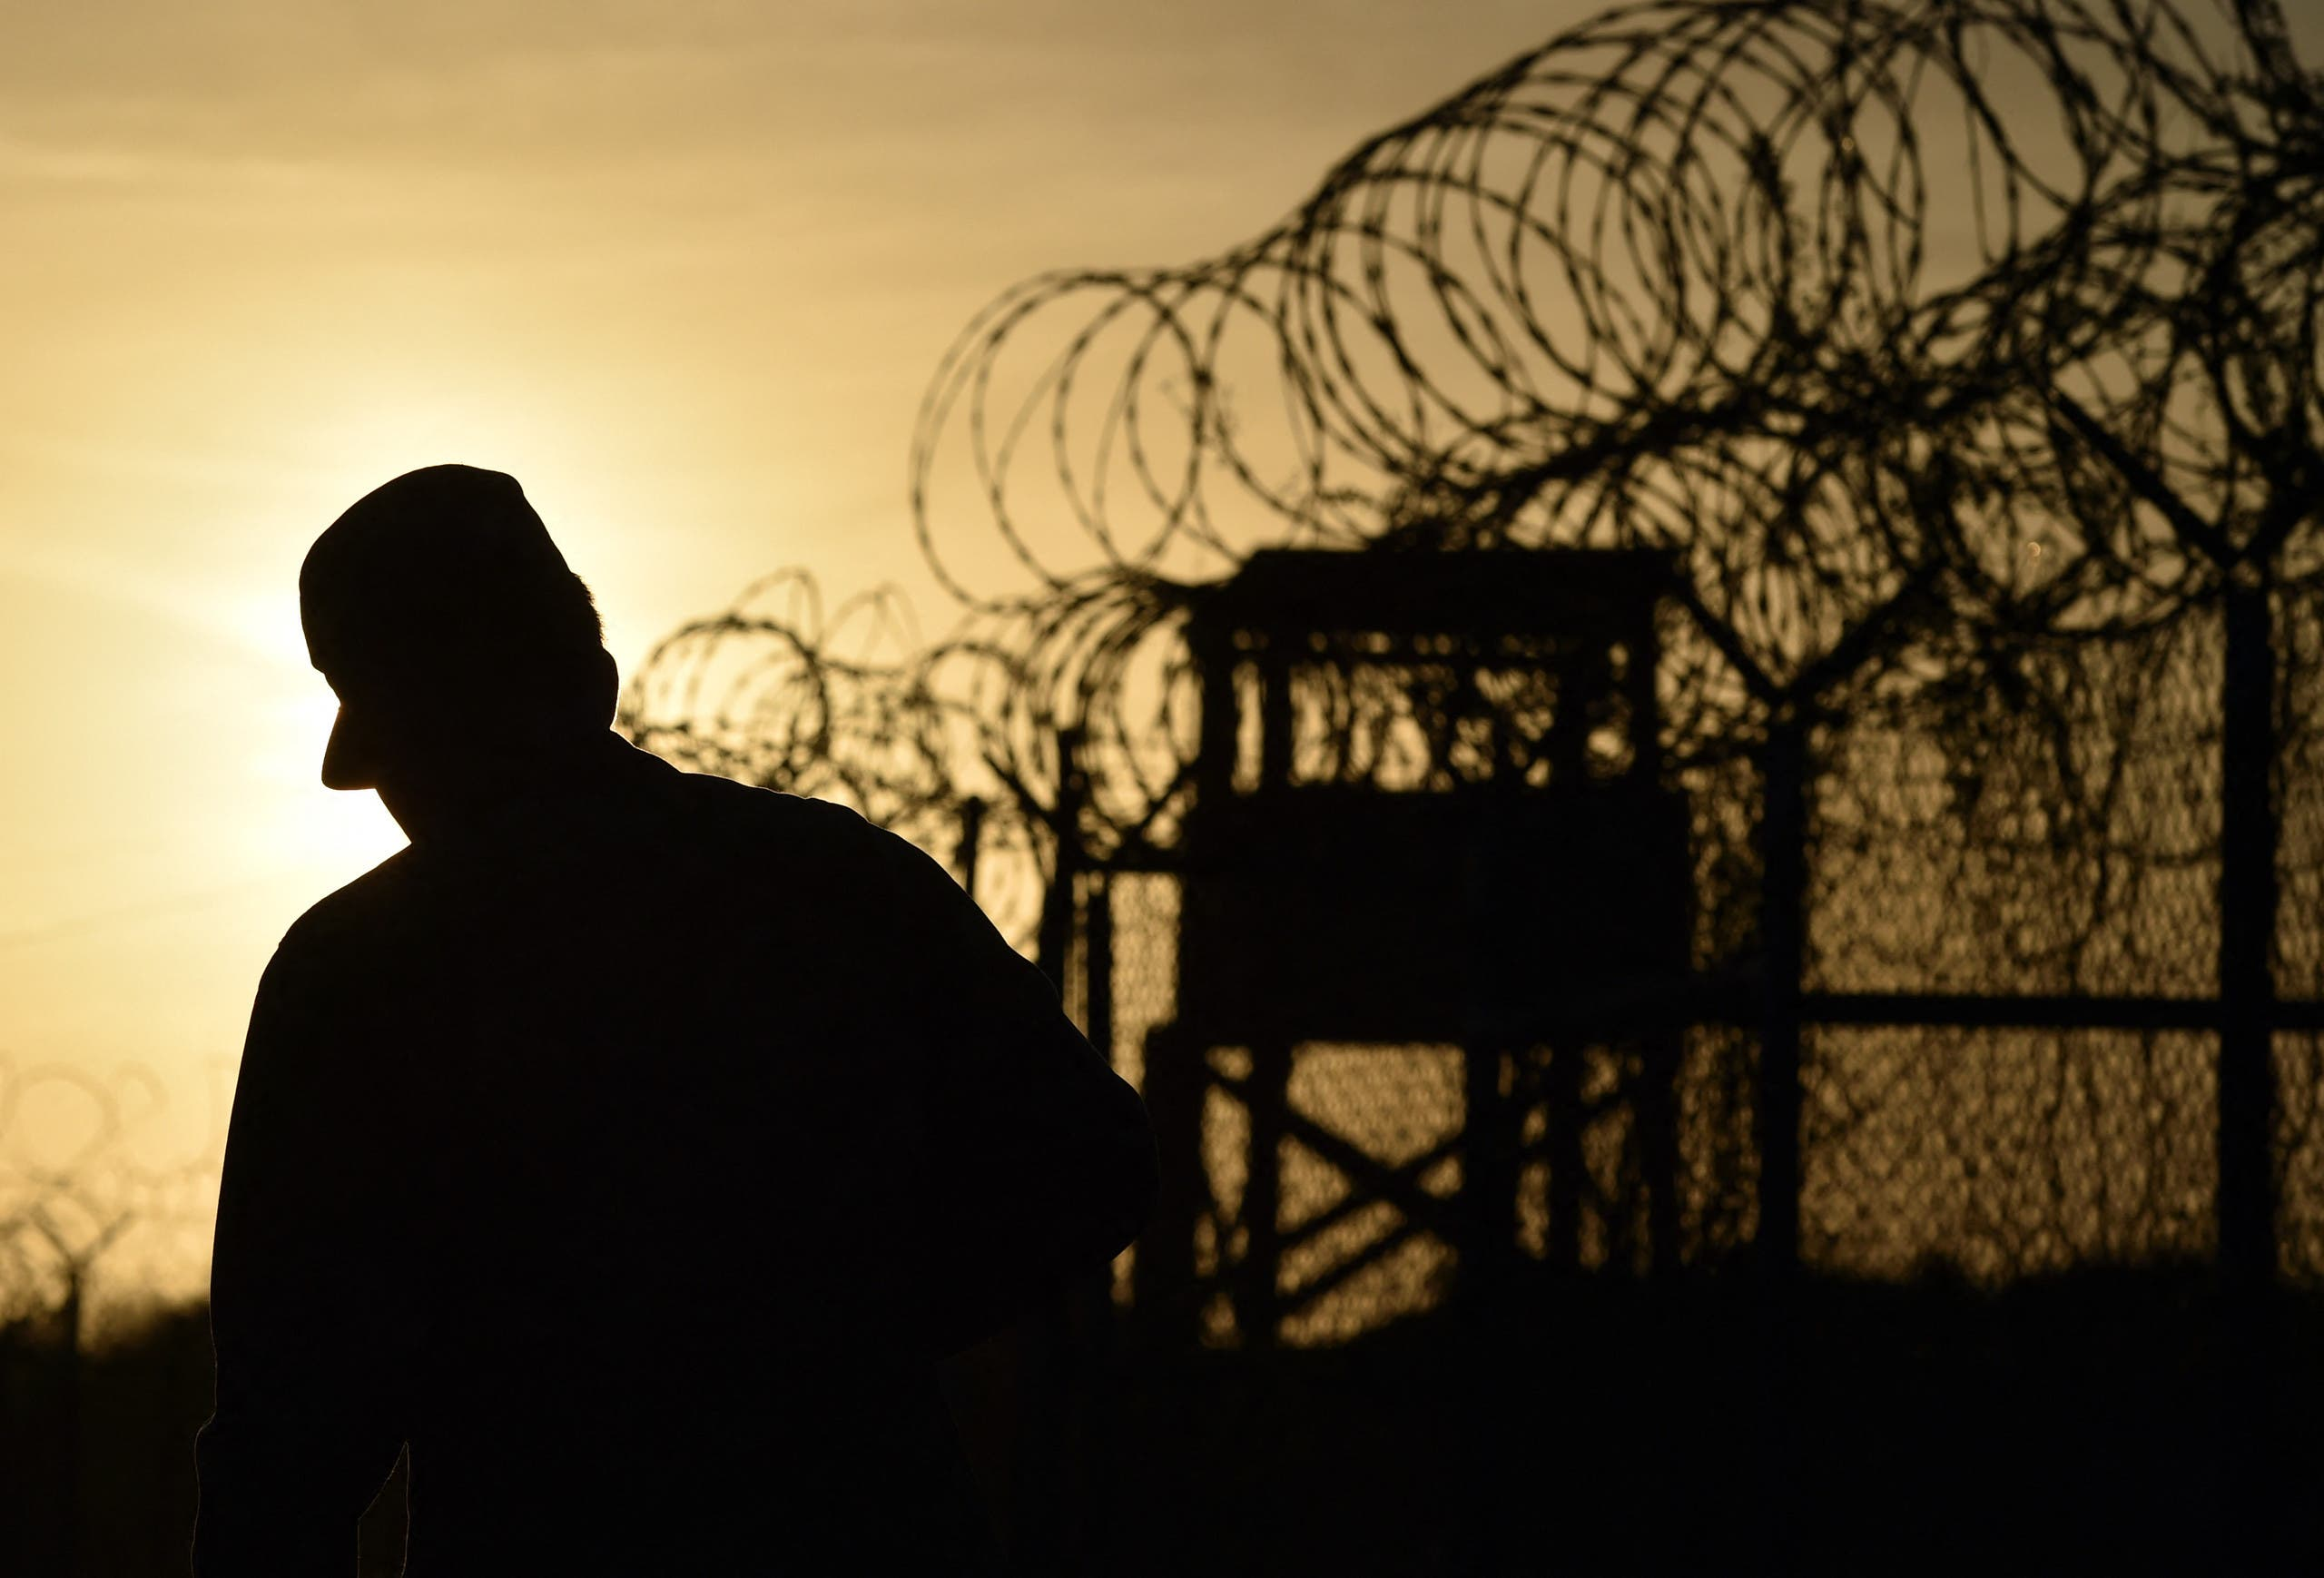 This photo made during an escorted visit and reviewed by the US military, shows an US soldier walking next to the razor wire-topped fence at the abandoned Camp X-Ray detention facility at the US Naval Station in Guantanamo Bay, Cuba, April 9, 2014. (AFP)